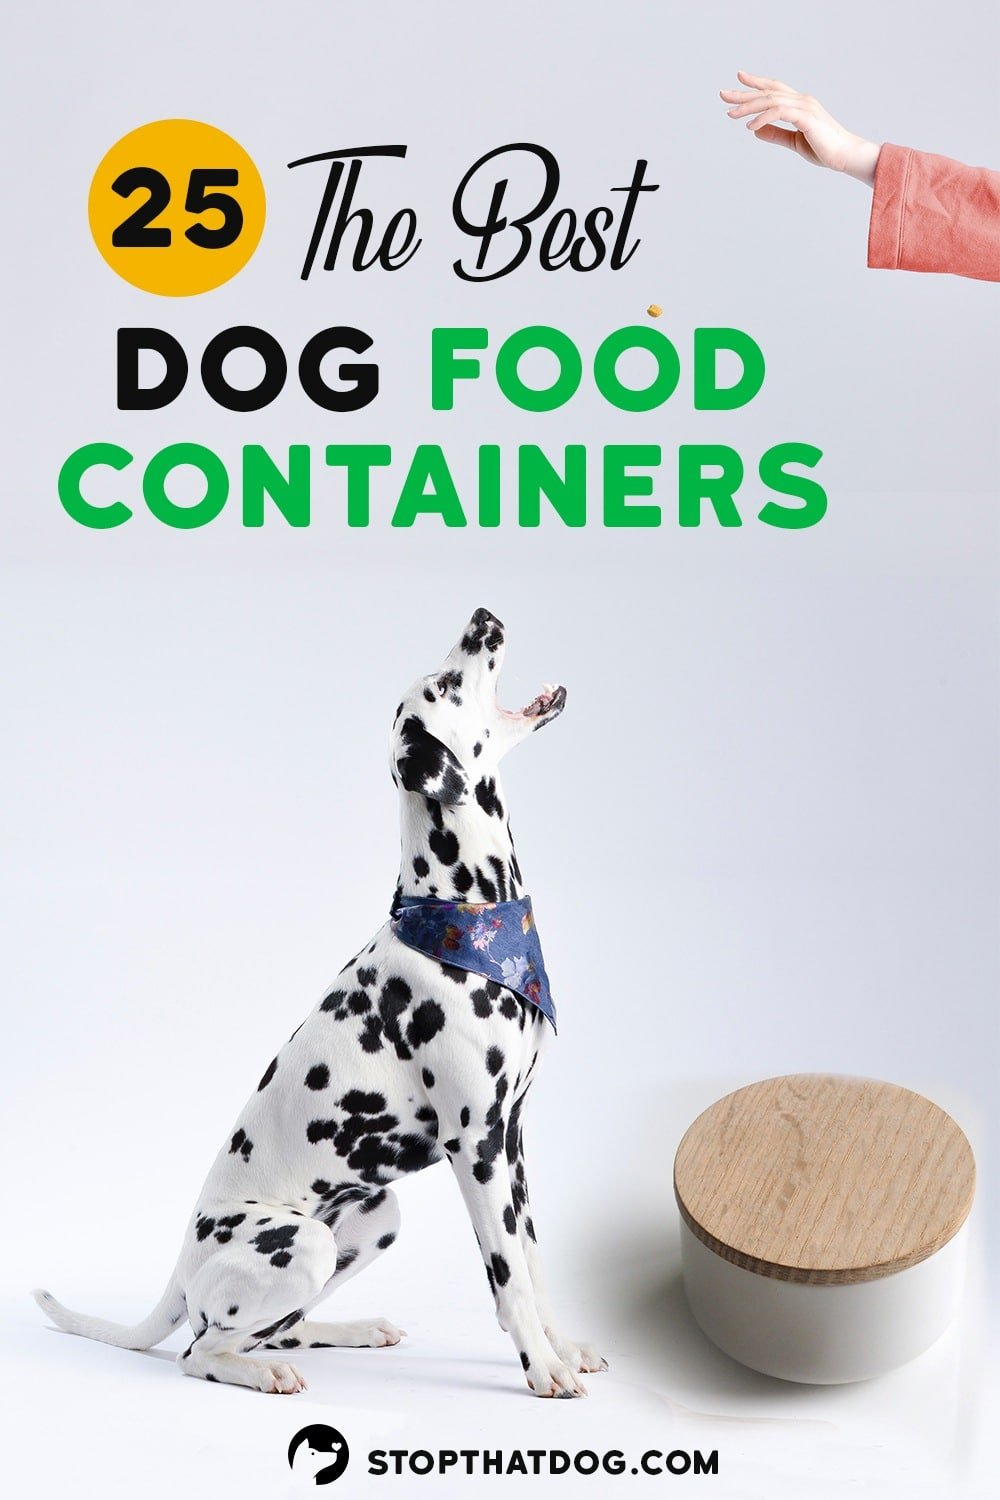 Want to keep your dog\'s food fresh, tasty, and free from pests? If so, this guide highlights the best dog food containers on the market.